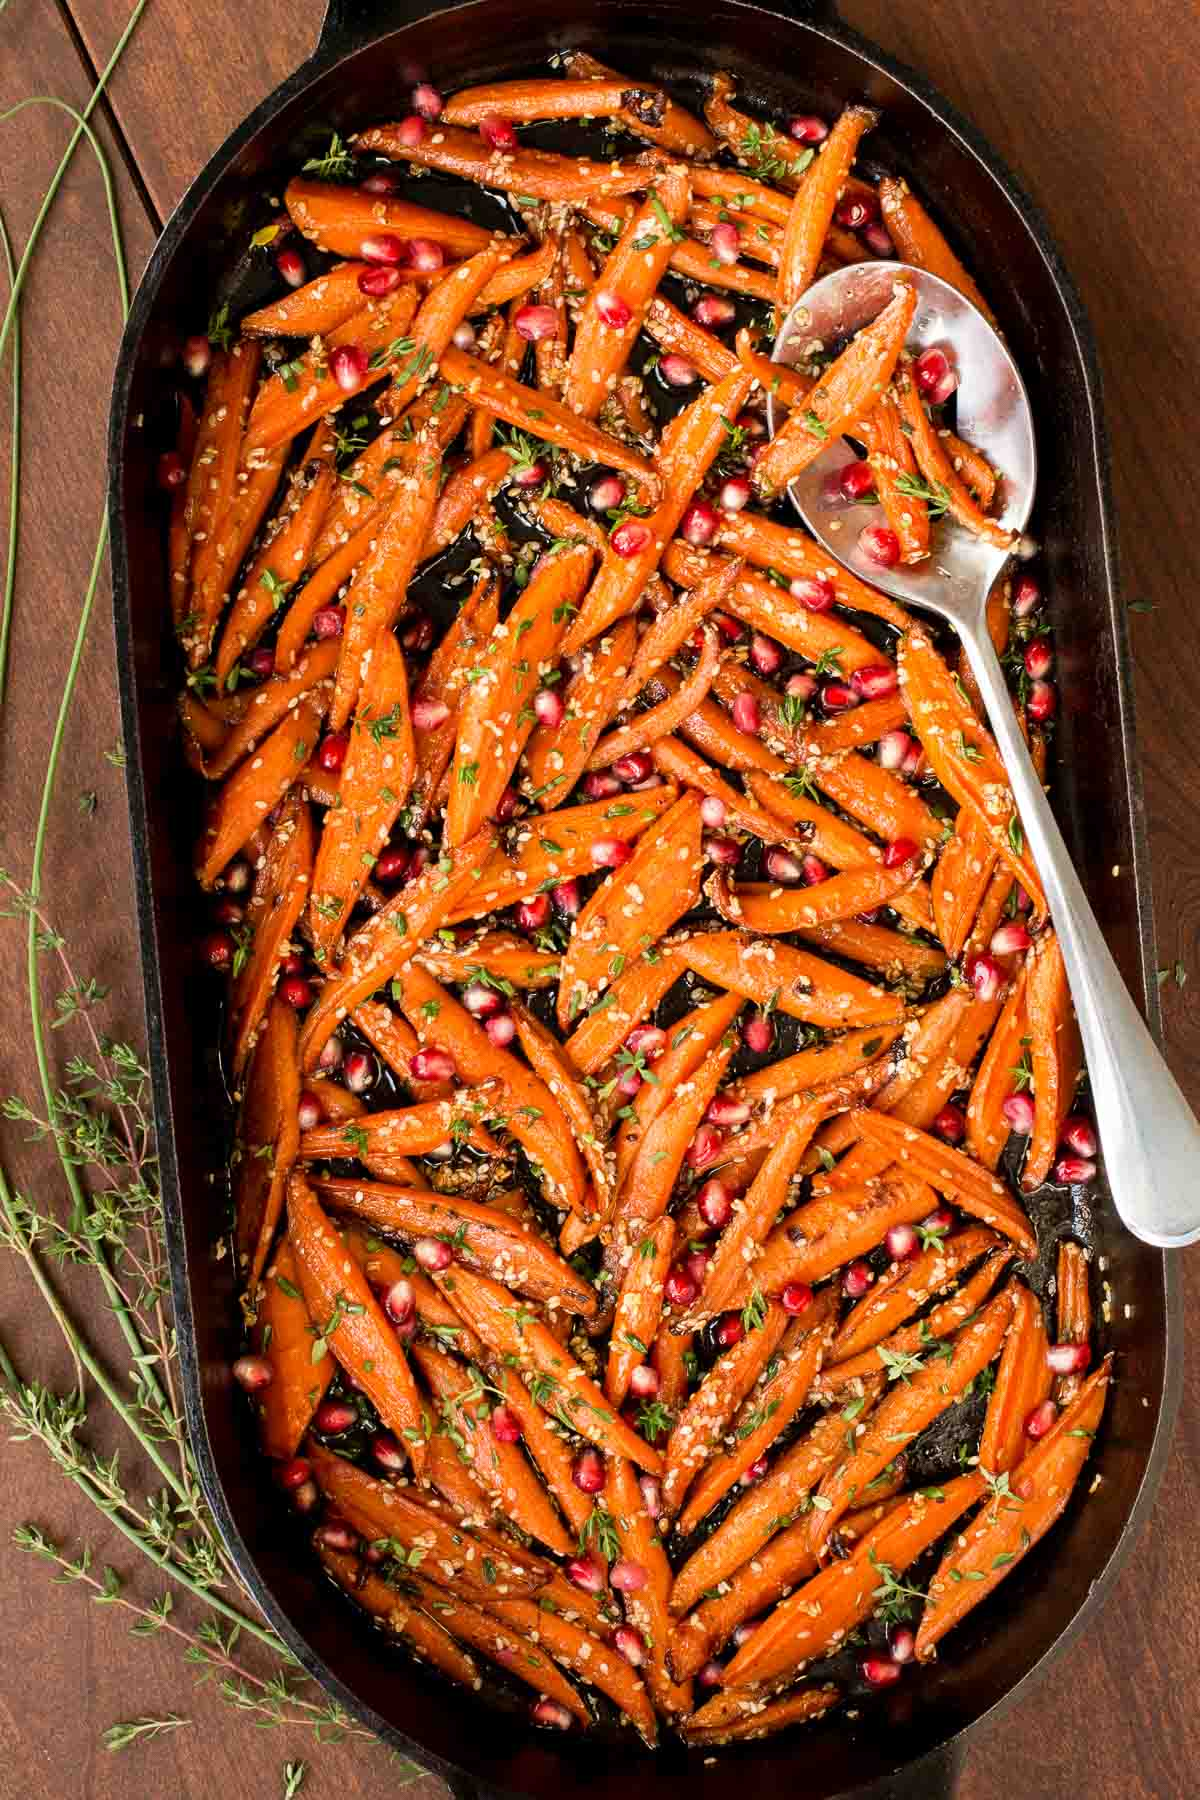 Overhead photo of a cast iron oval dish of Honey Maple Roasted Carrots on a wood table.